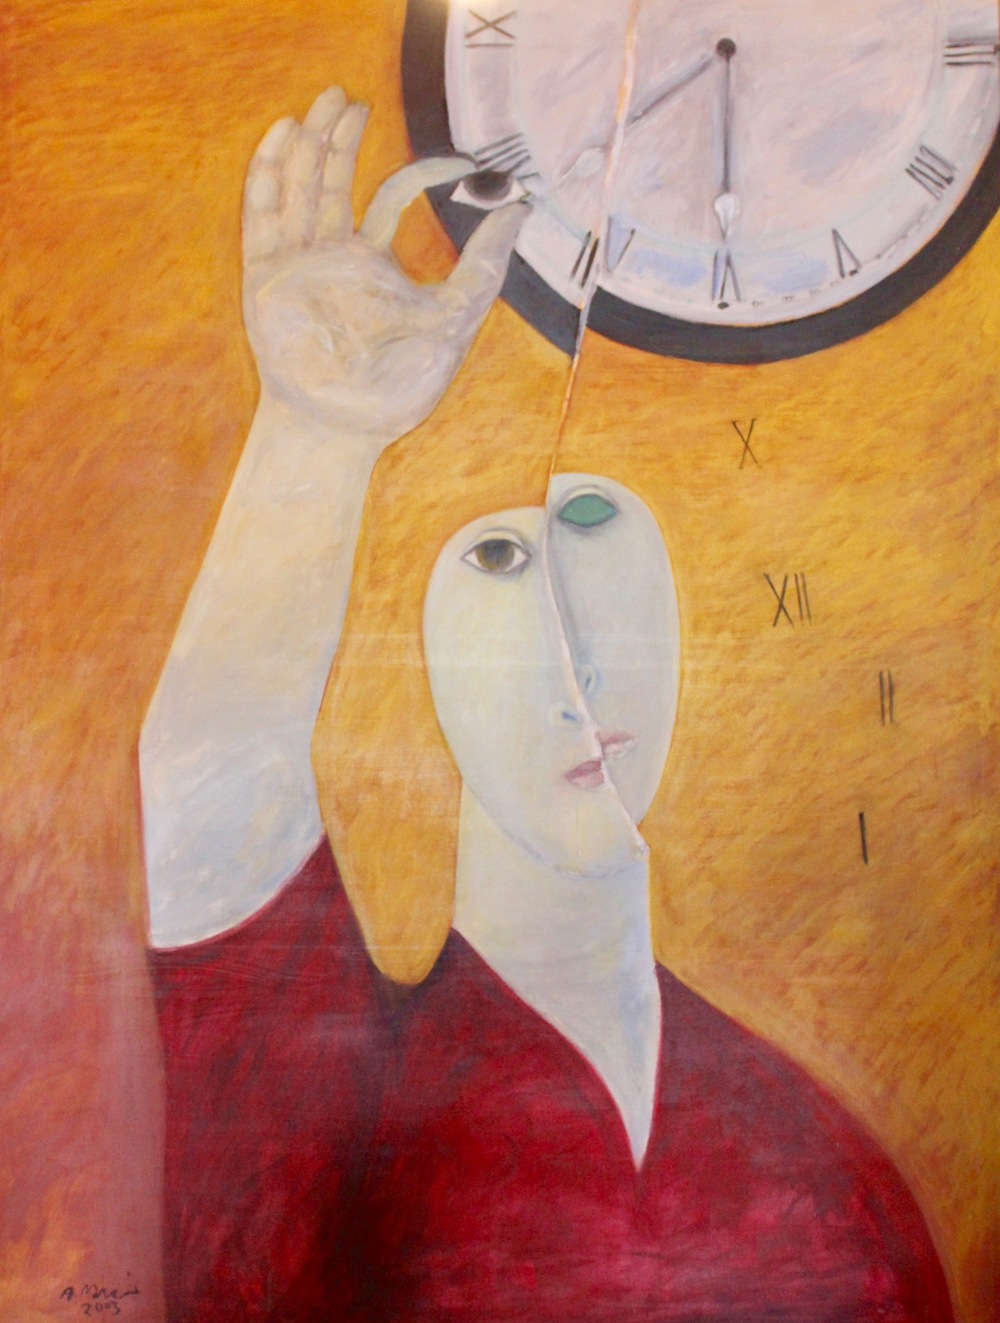 Ahmed Morsi, Eyeing Time, 2000, Acrylic on canvas, 199 x 154 cm.